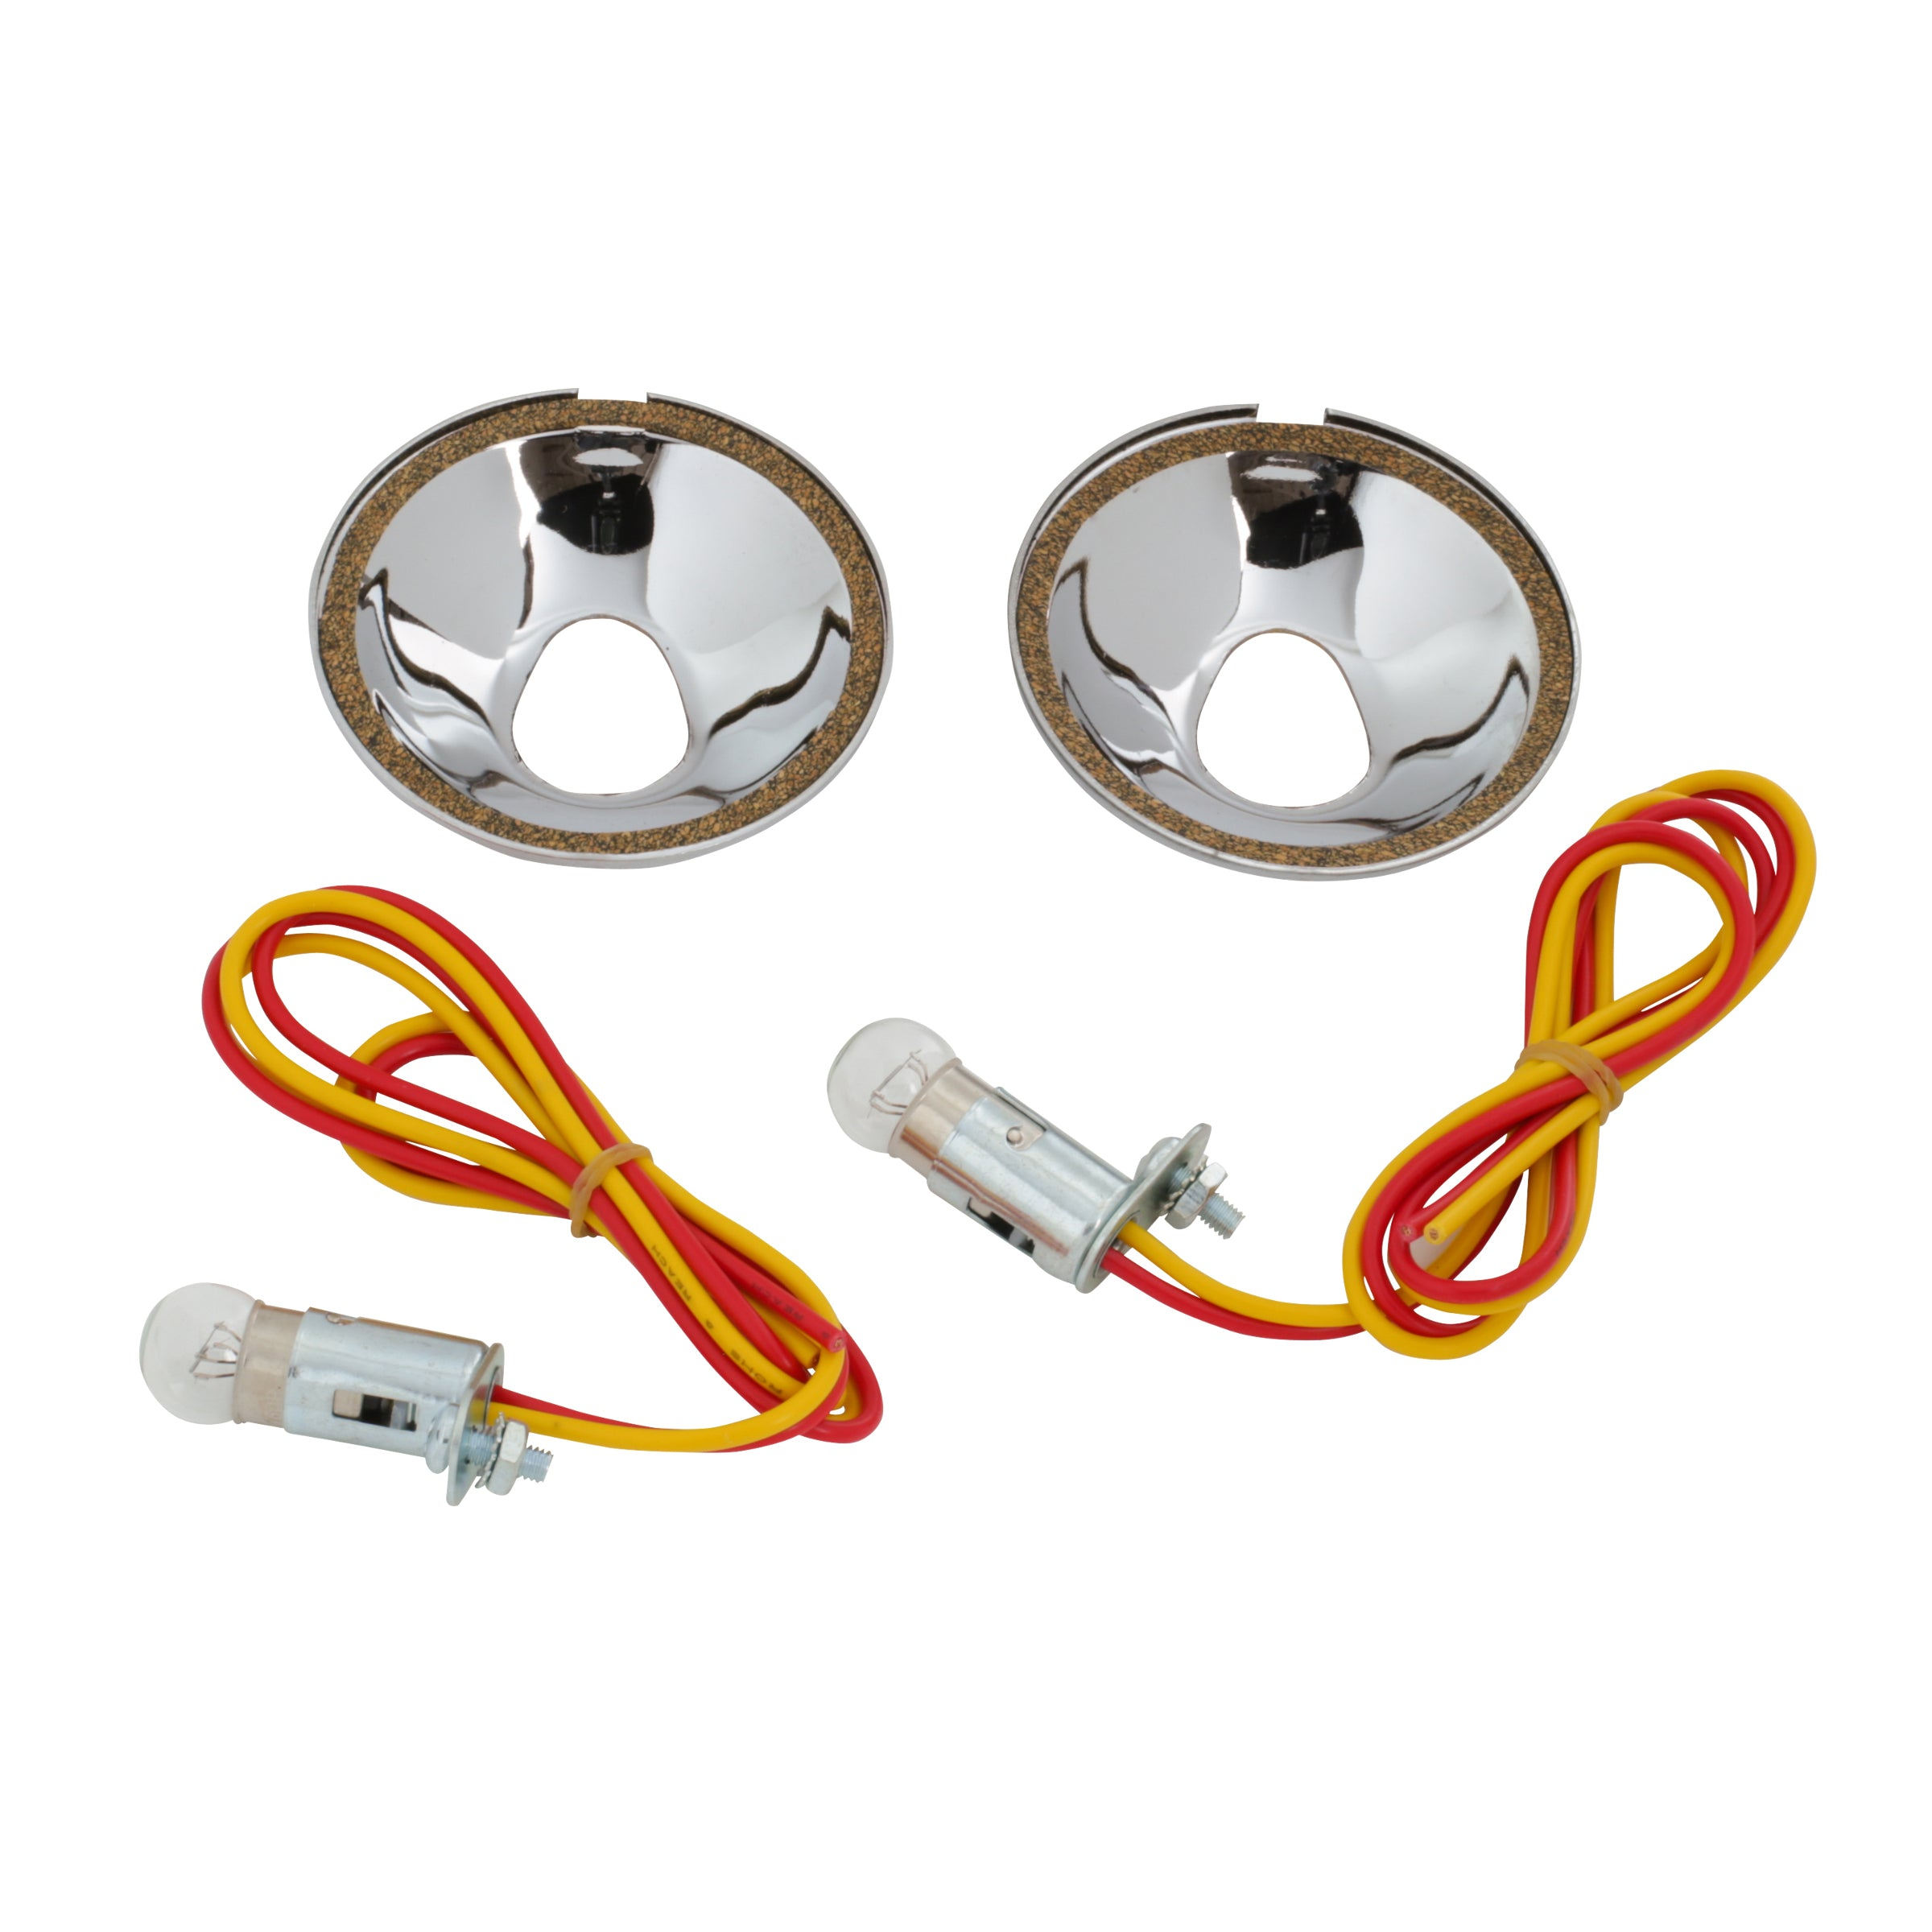 Turn Signal Adapter Kit for Cowl Lights • 1932 Ford